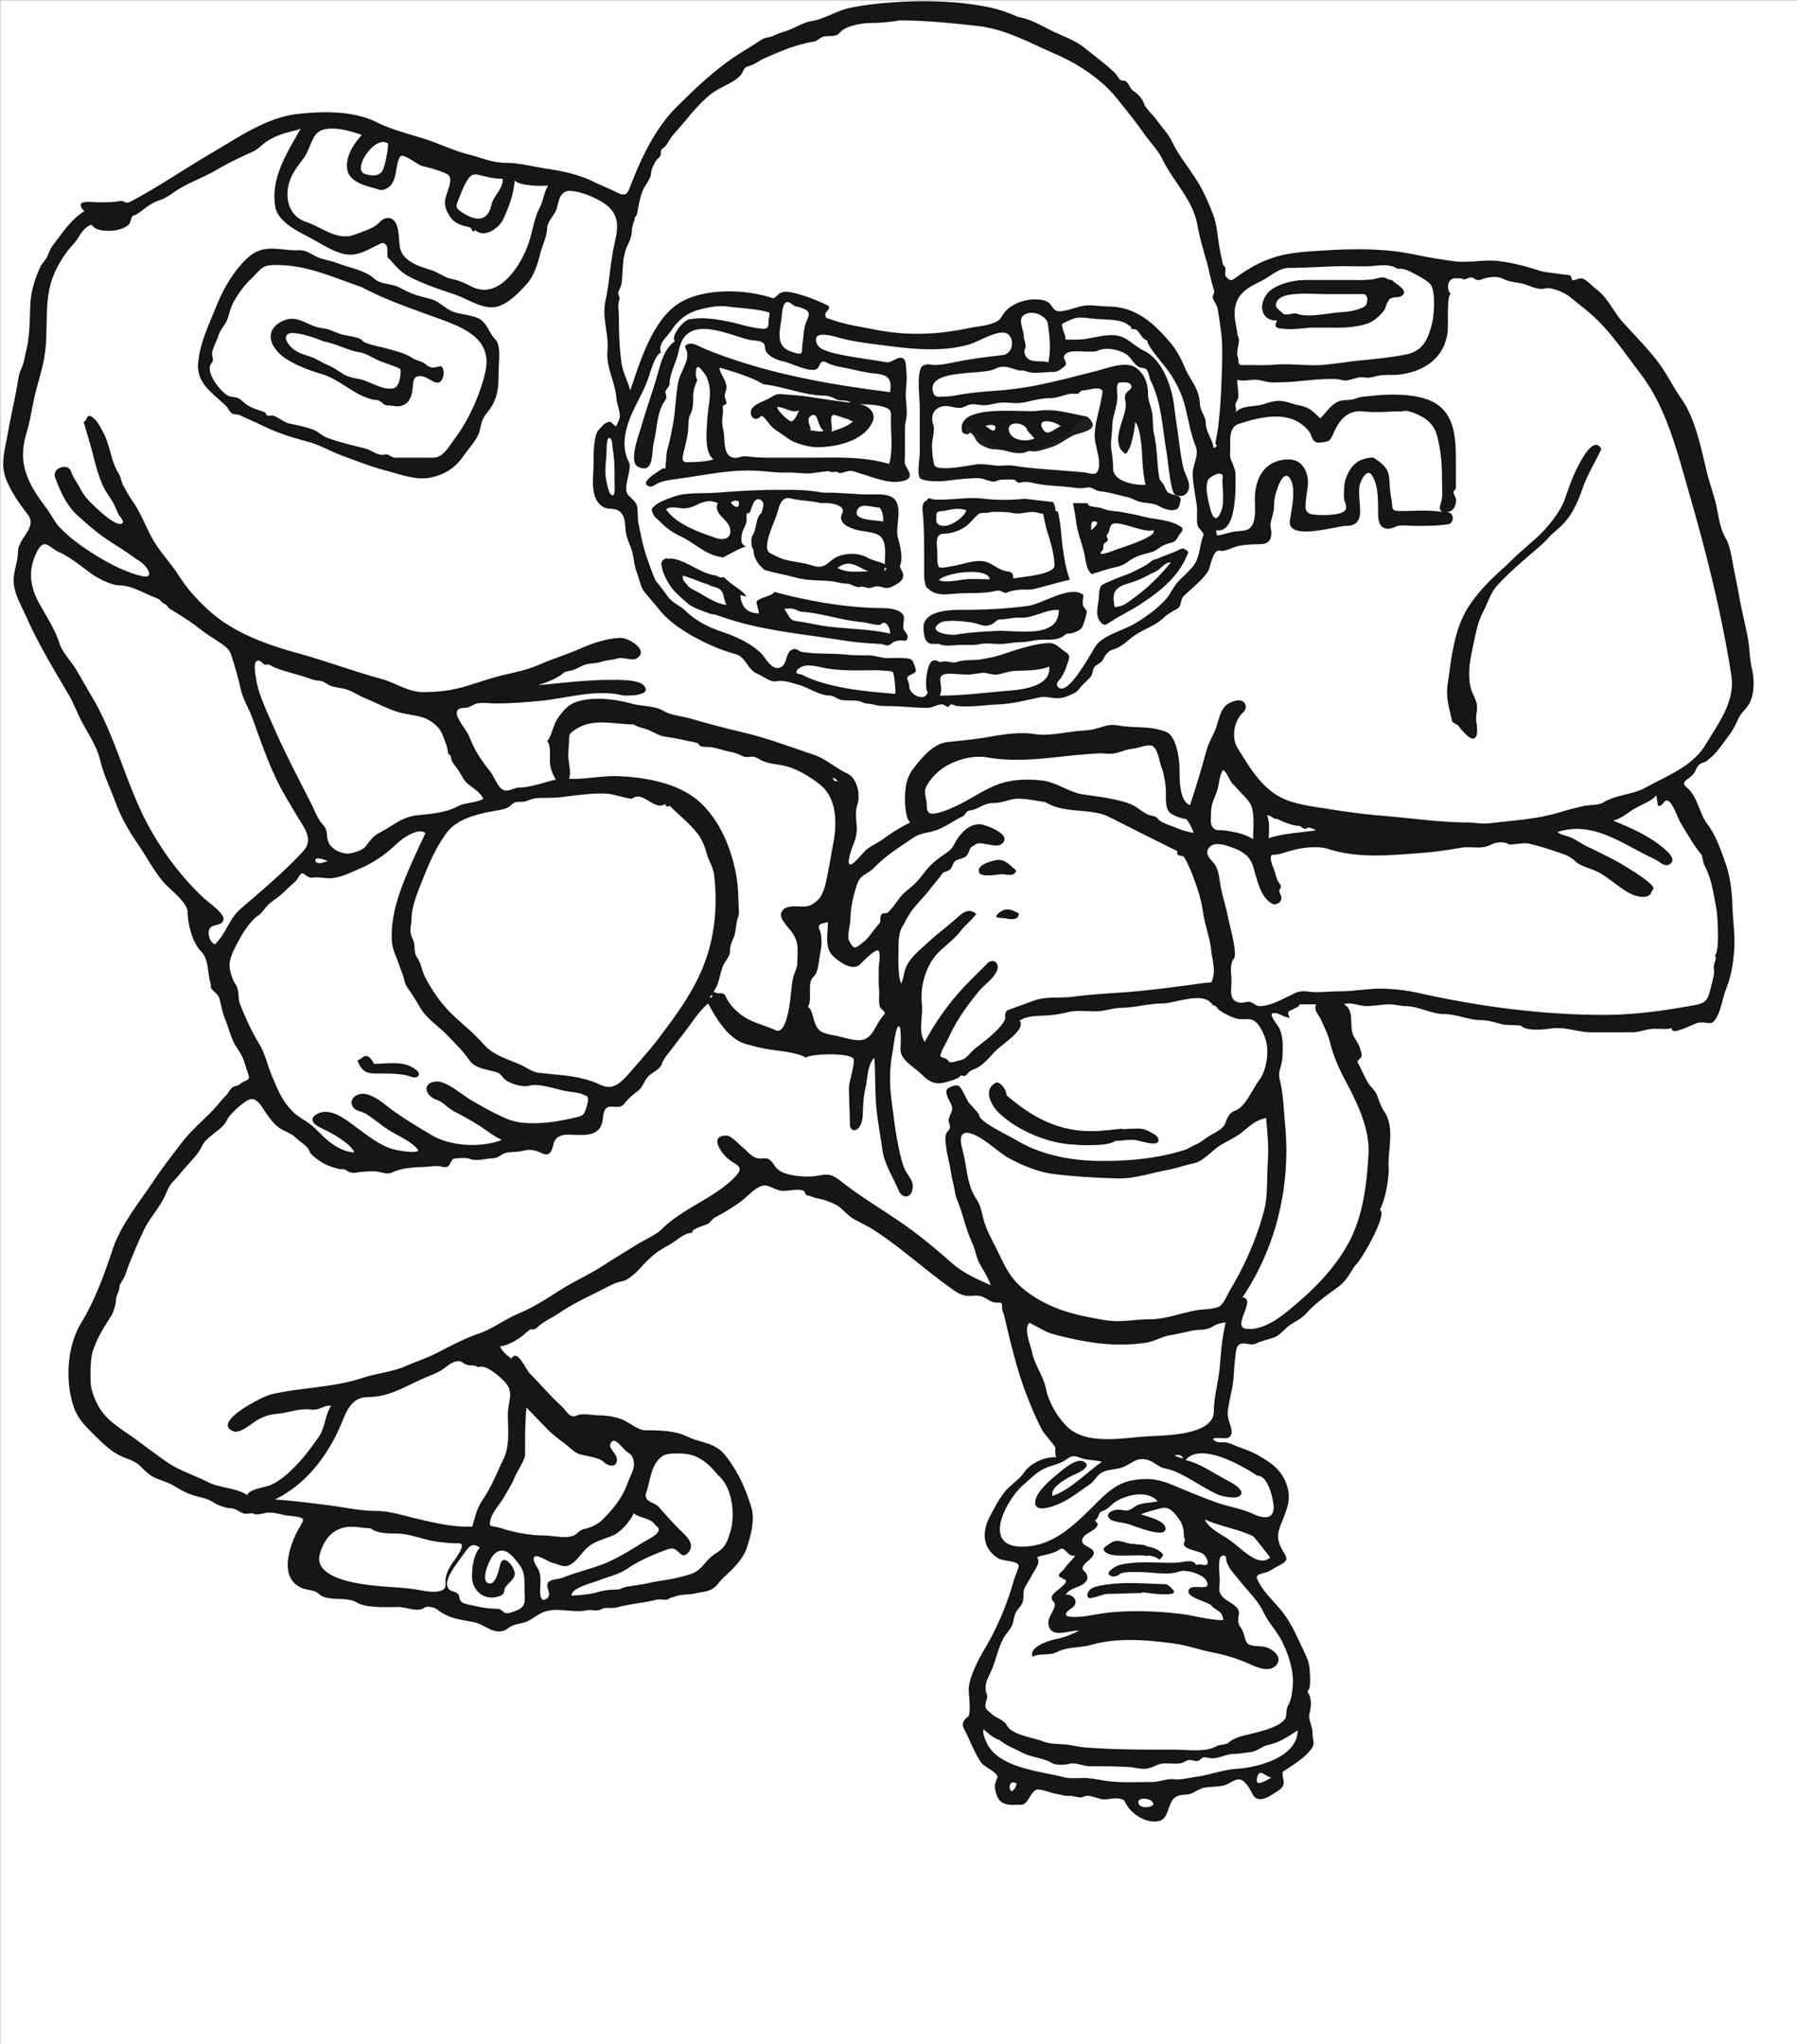 1899x2160 Super Bowl Coloring Pages Online Coloring Printable